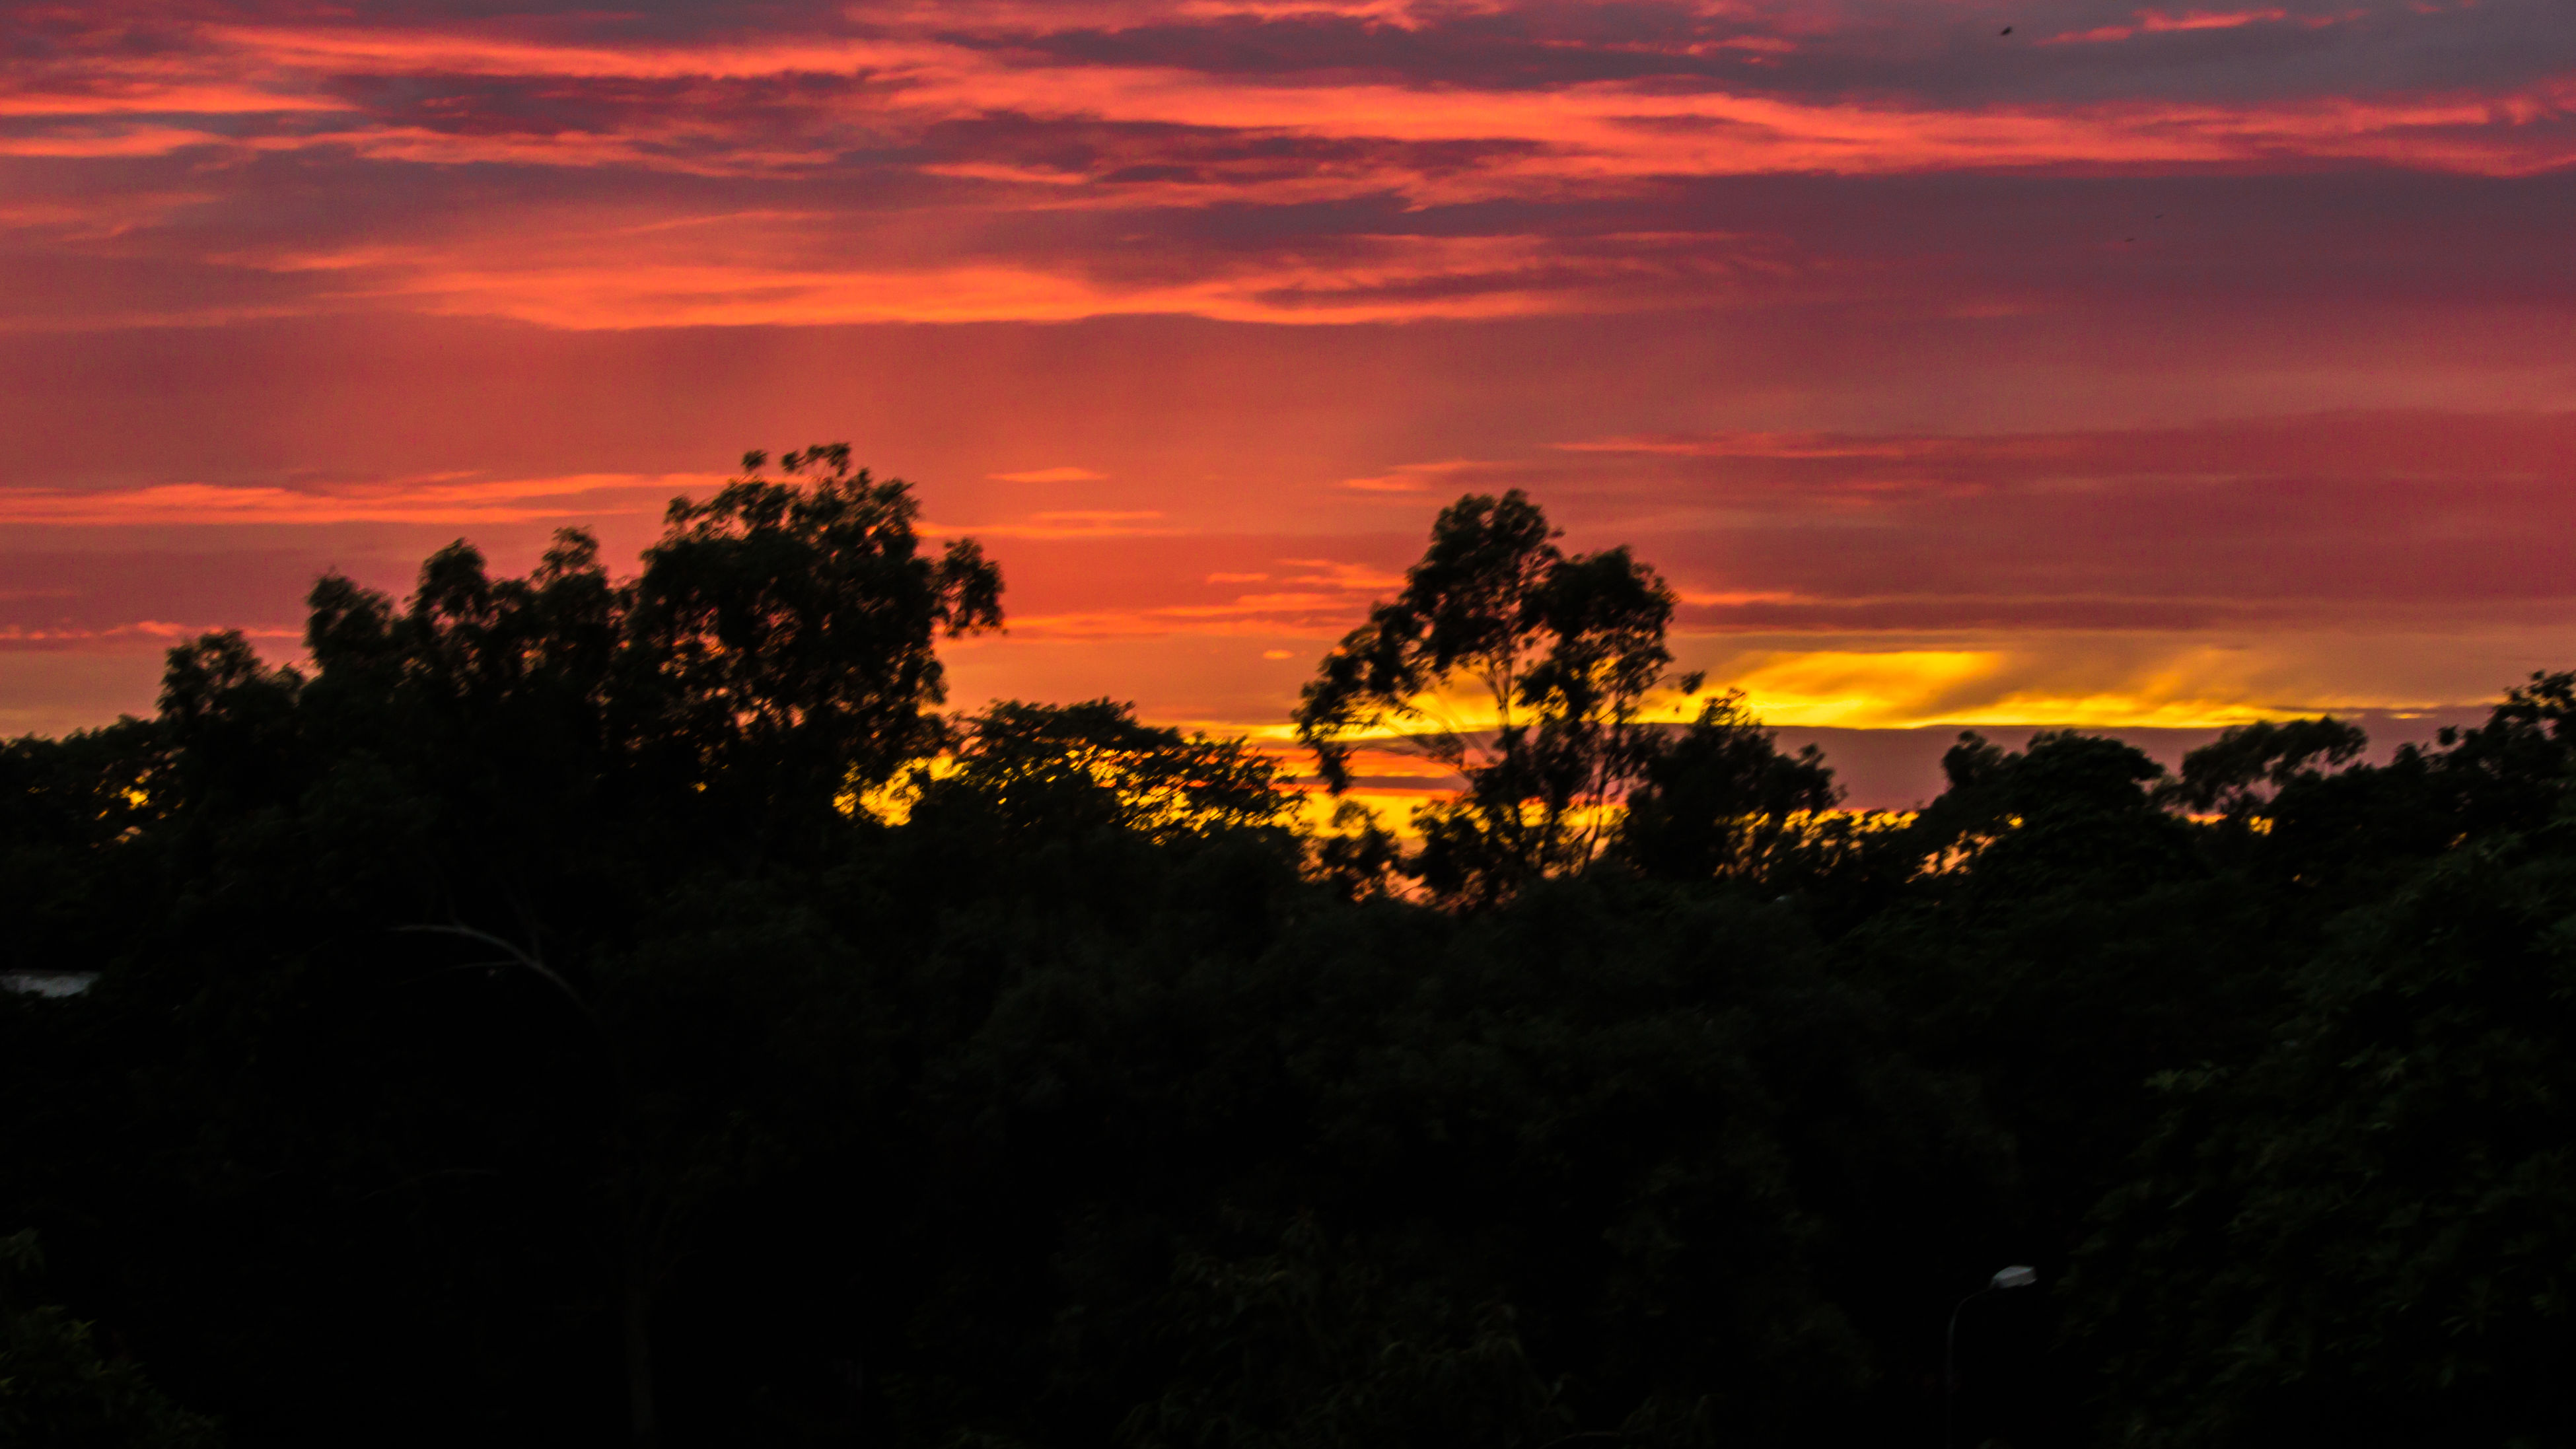 sunset, silhouette, tree, orange color, sky, beauty in nature, scenics, tranquil scene, tranquility, cloud - sky, nature, idyllic, growth, dramatic sky, landscape, cloud, outdoors, no people, cloudy, non-urban scene